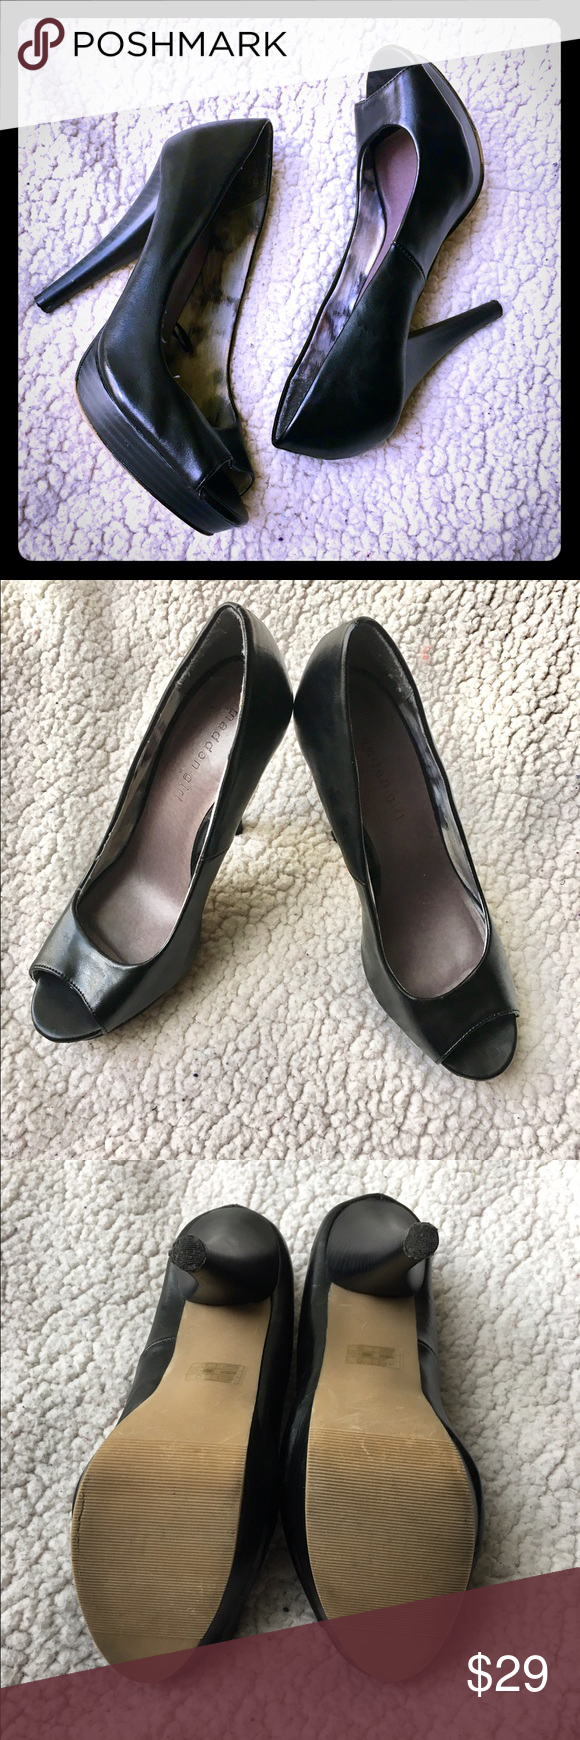 🎈PRICE CUT🎈⭐️Madden Girl Black Leather Heels⭐️ These Madden Girl heels are in gorgeous condition! They are beautiful and elegant; perfect for many occasions. There is minimal wear on the soles (looks like from the sticker being pulled off) and natural wear on the bottoms (very minor and can probably be removed). They have a 5 inch heel. I will accept reasonable offers. Madden Girl Shoes Heels